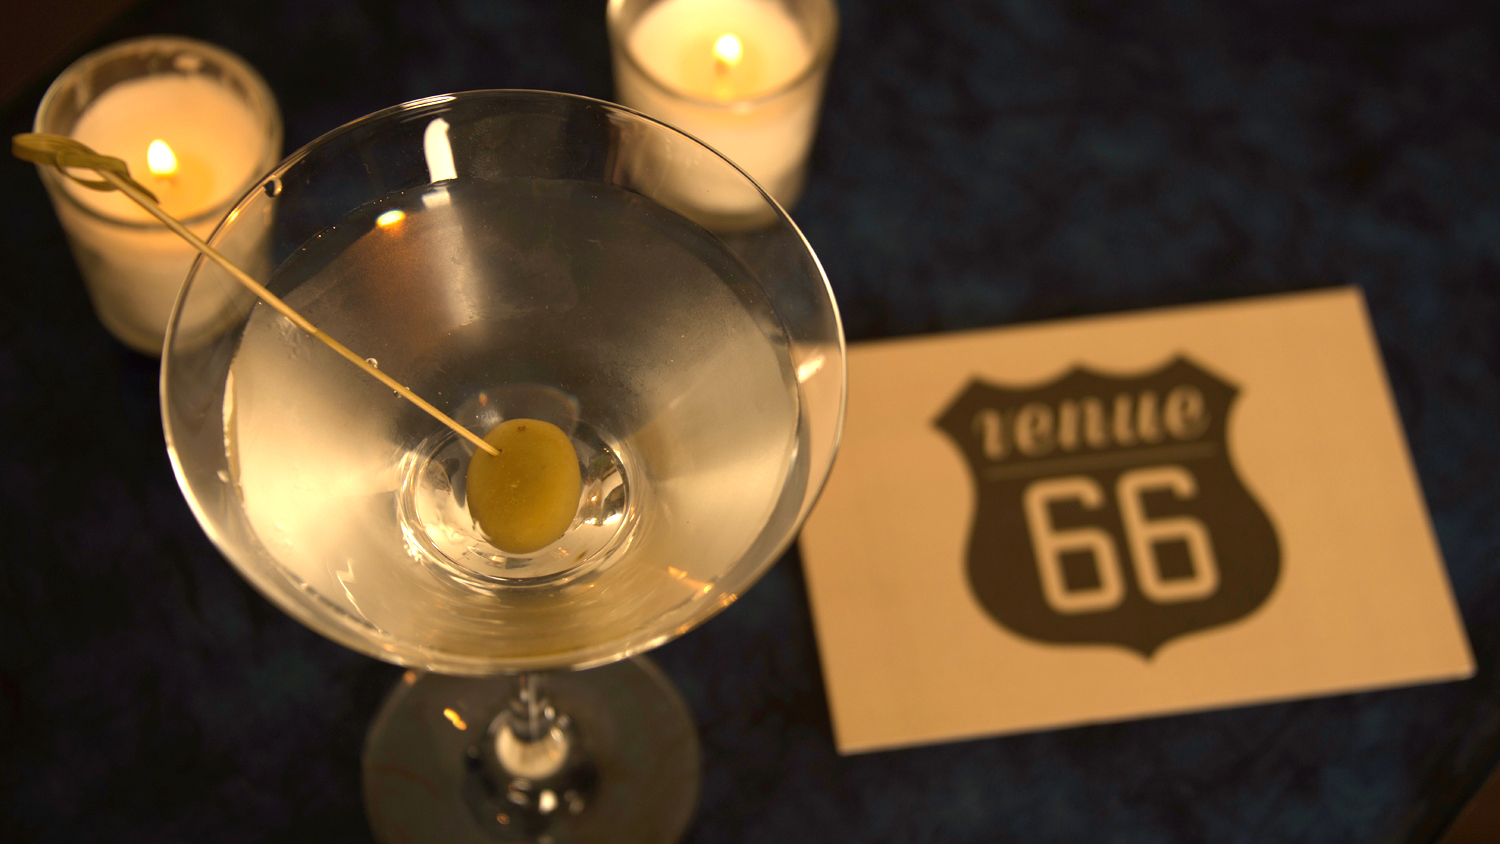 v66+cocktail+club.jpg